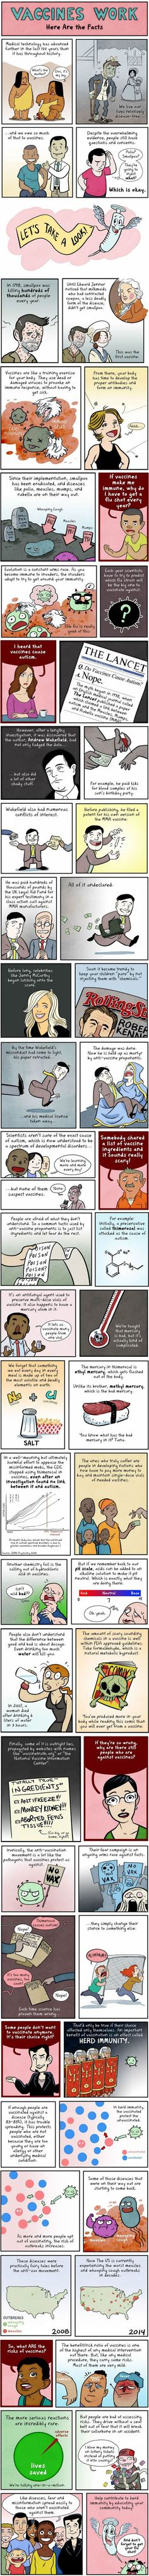 For All Those Anti-Vaccine People… Here's A Little Science